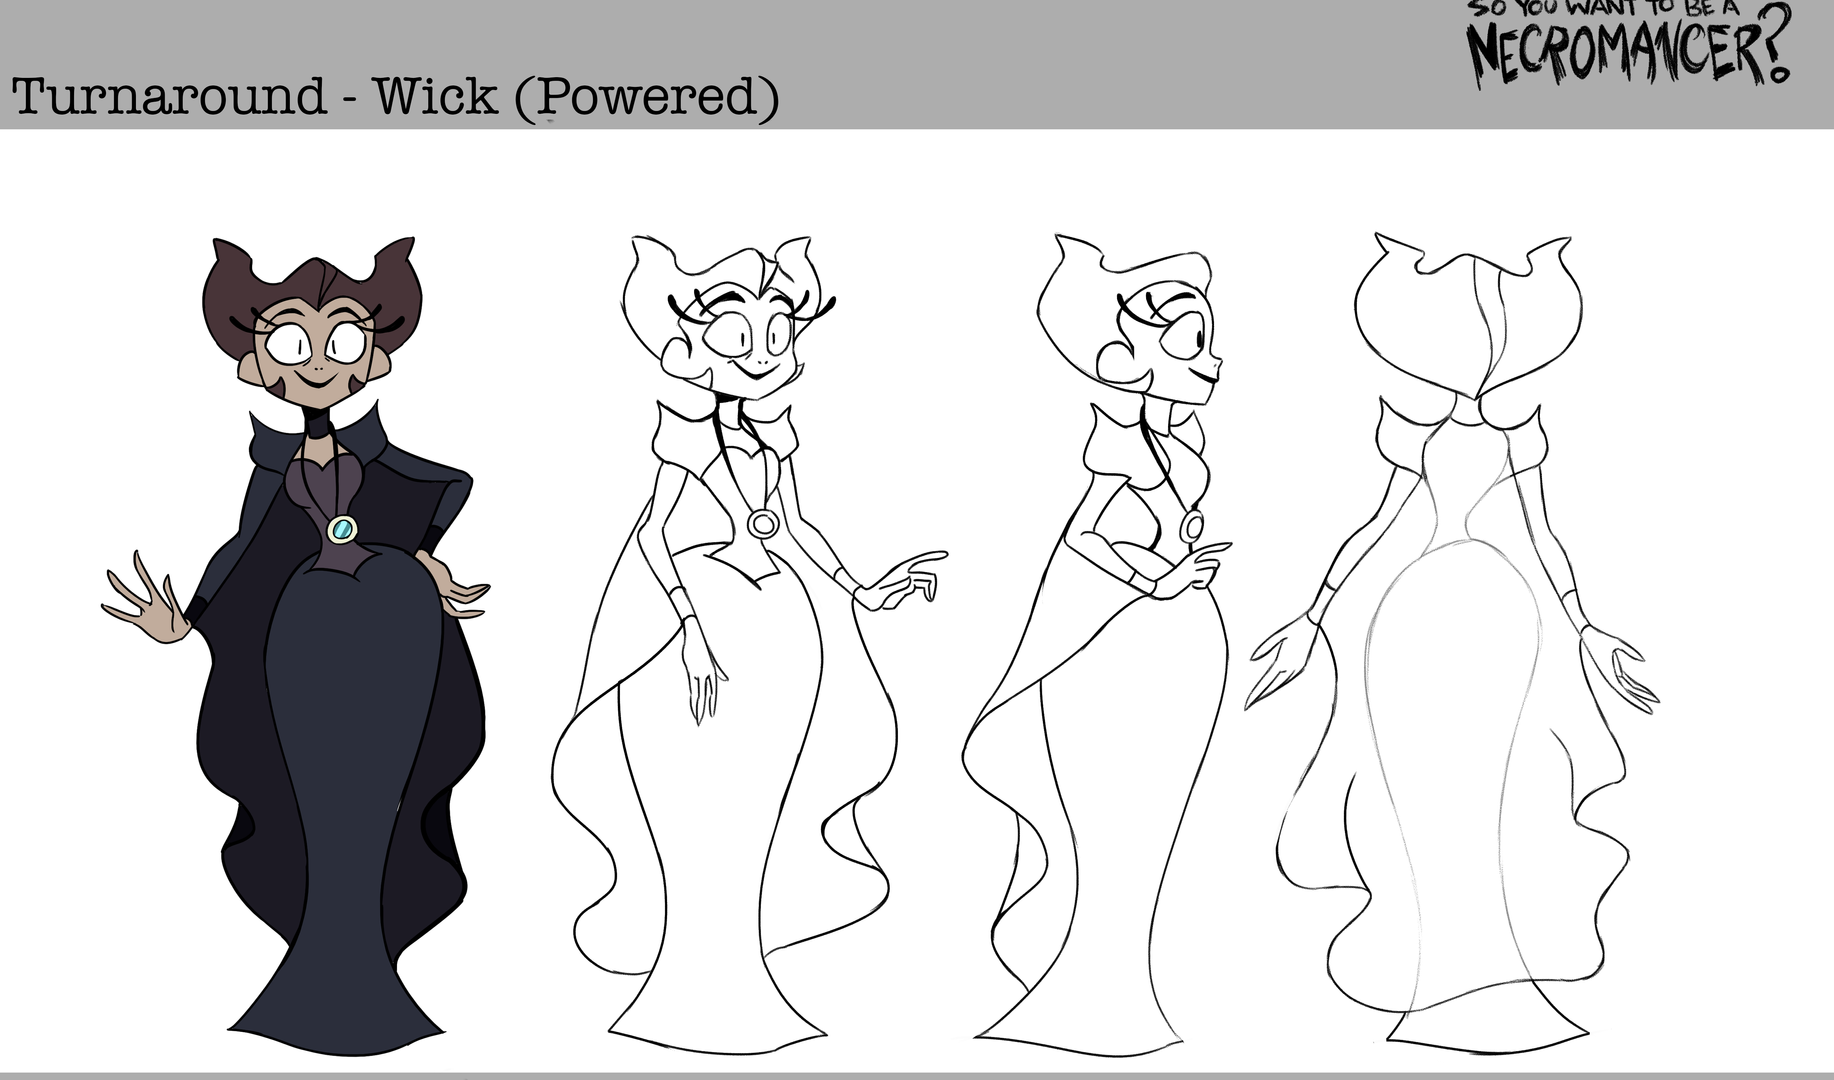 Turnaround - Wick (Powered)